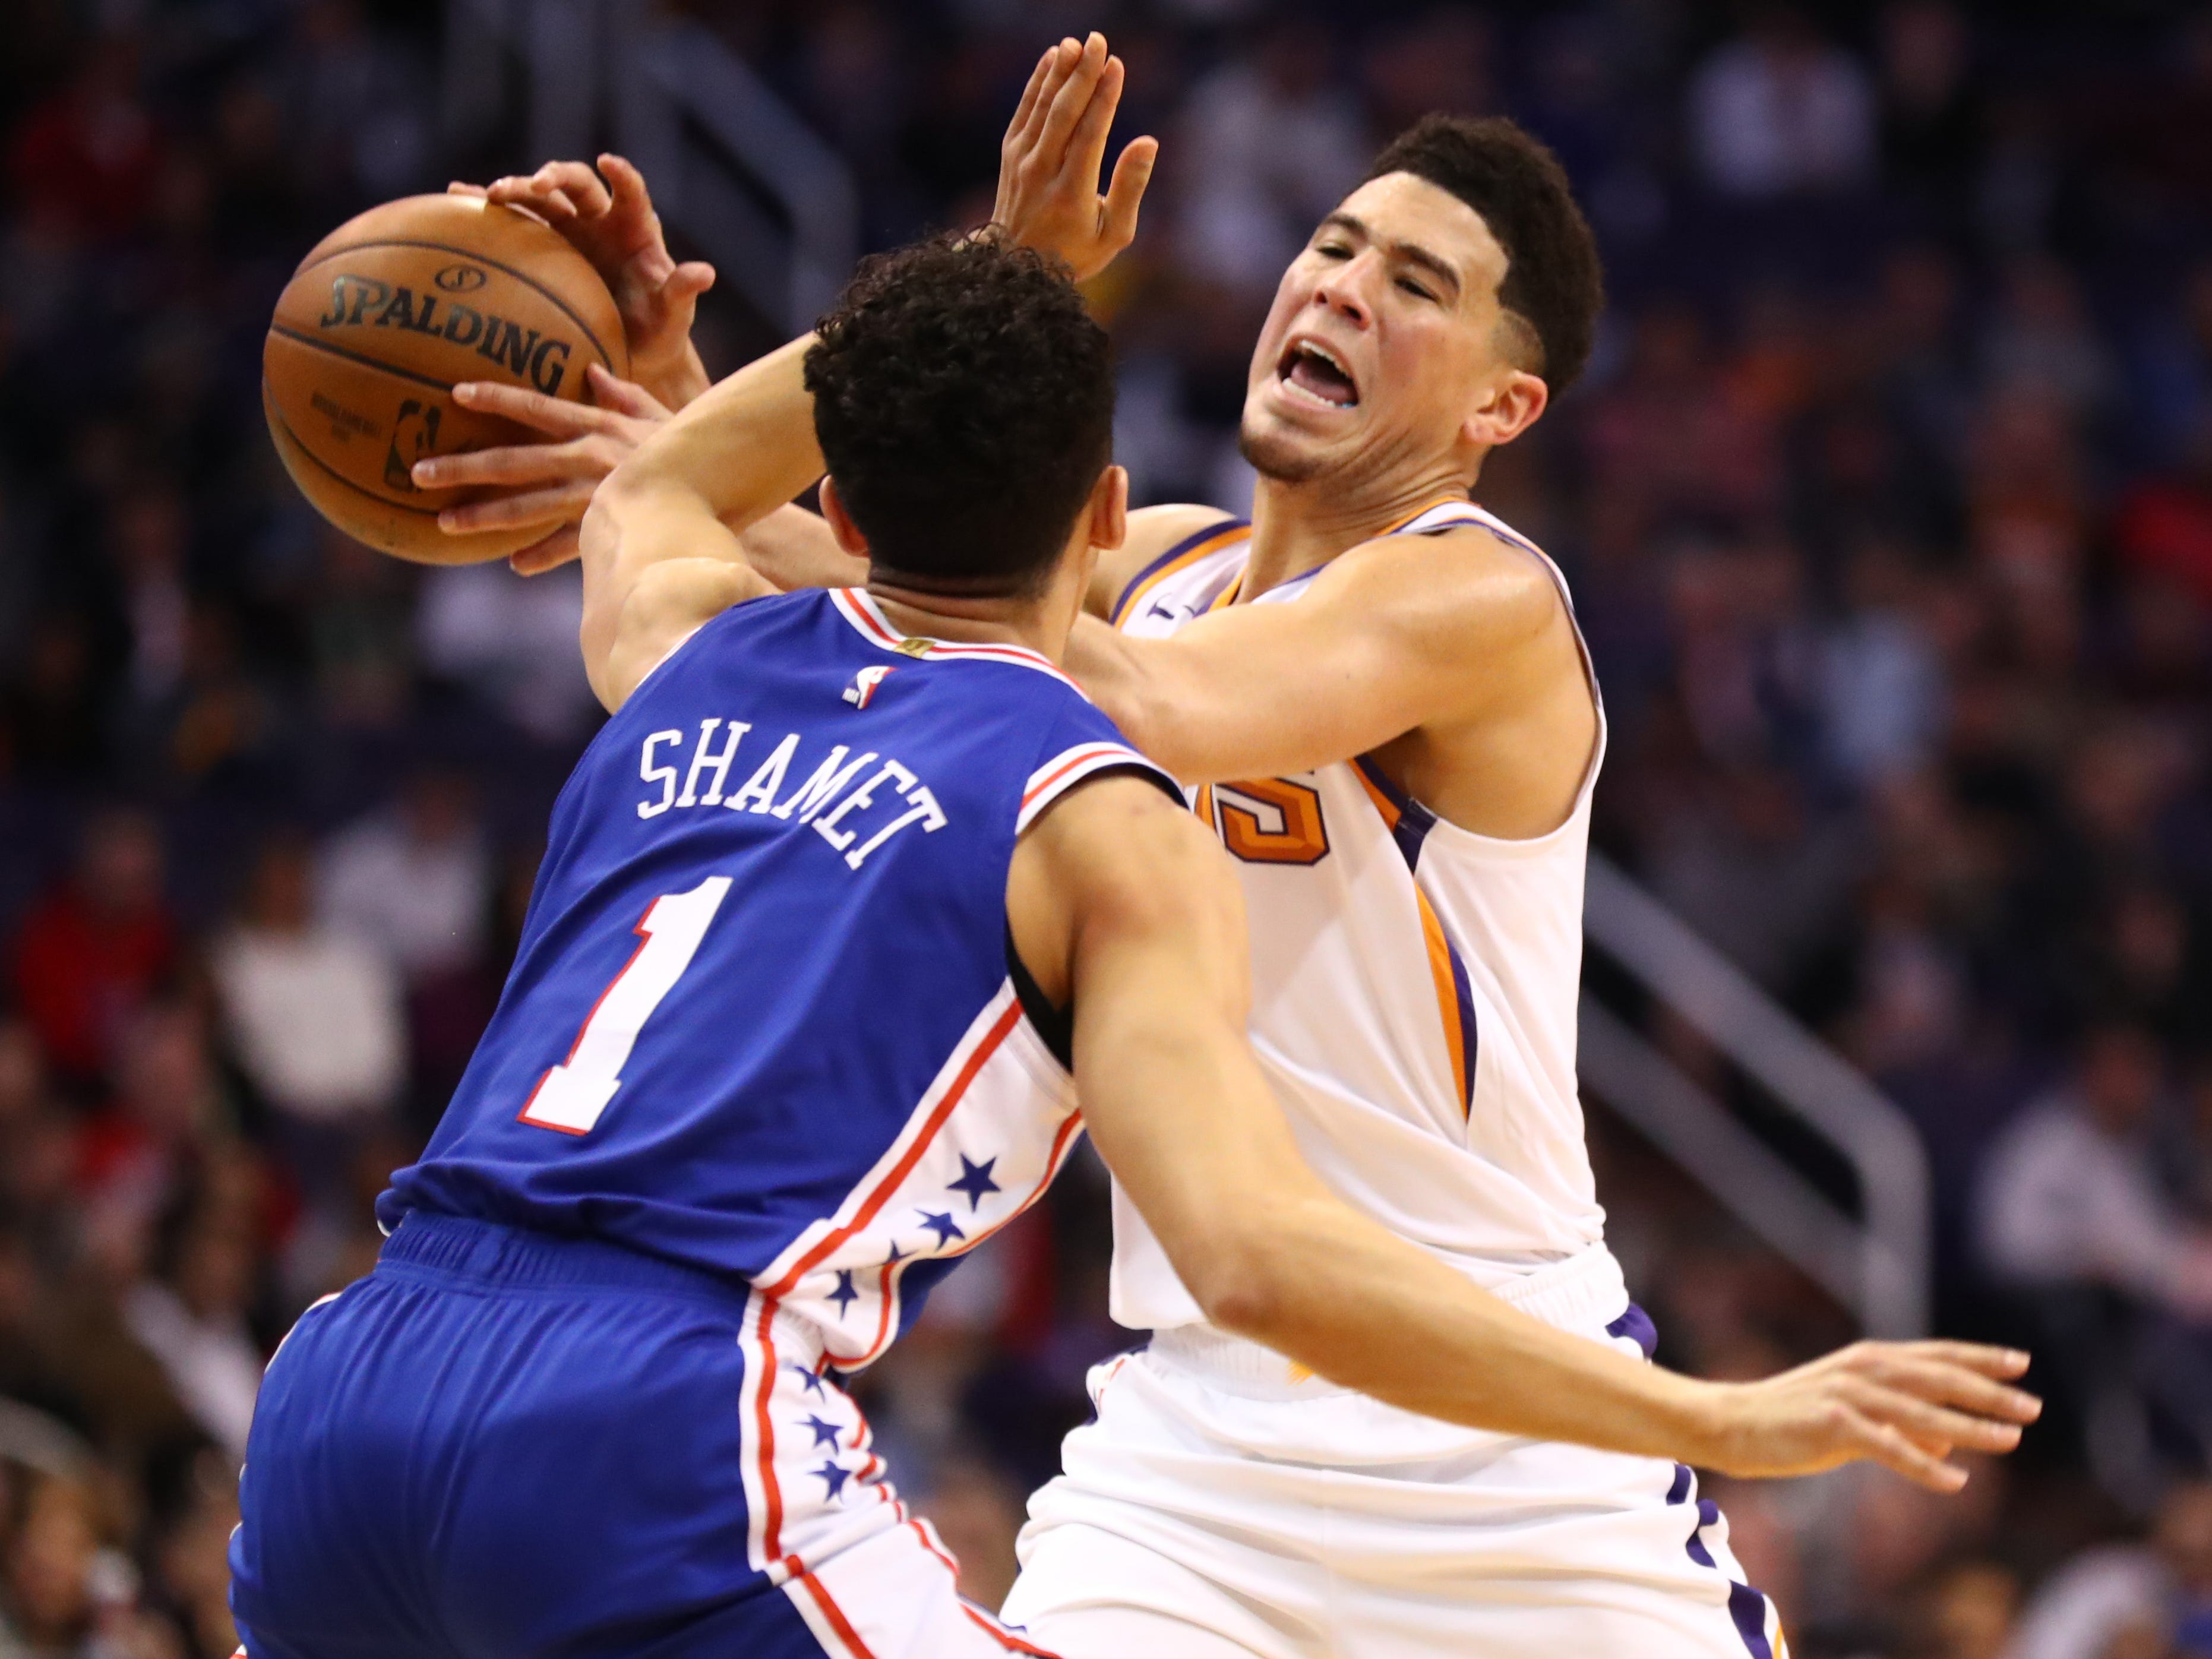 Jan 2, 2019; Phoenix, AZ, USA; Phoenix Suns guard Devin Booker (right) is fouled by Philadelphia 76ers guard Landry Shamet in the first half at Talking Stick Resort Arena. Mandatory Credit: Mark J. Rebilas-USA TODAY Sports